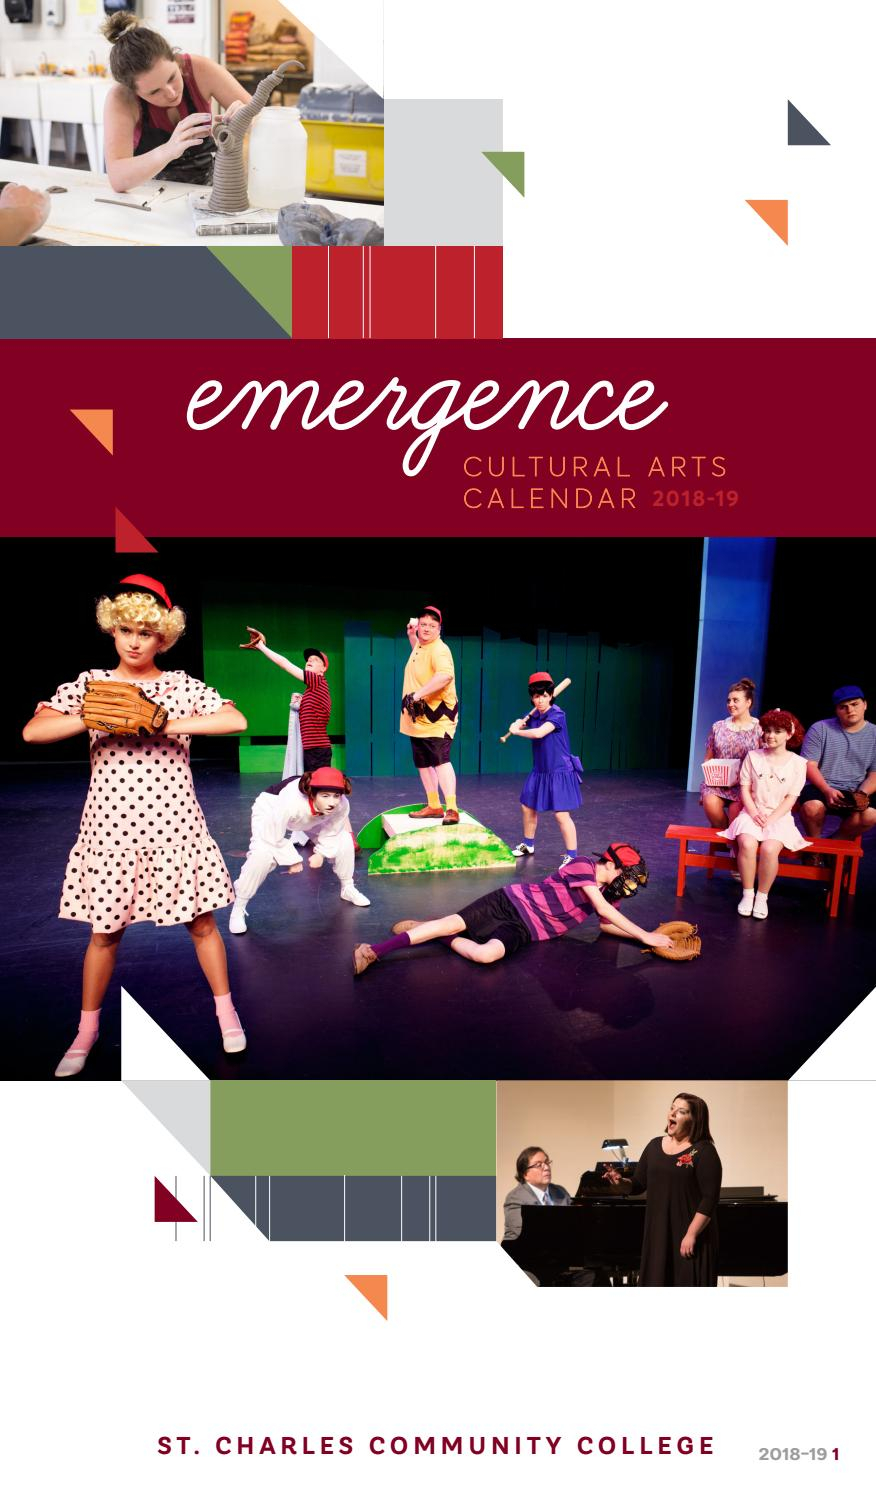 Emergence Arts Calendar 2018 2019St. Charles Community Intended For St Charles Commnity College Calendar'